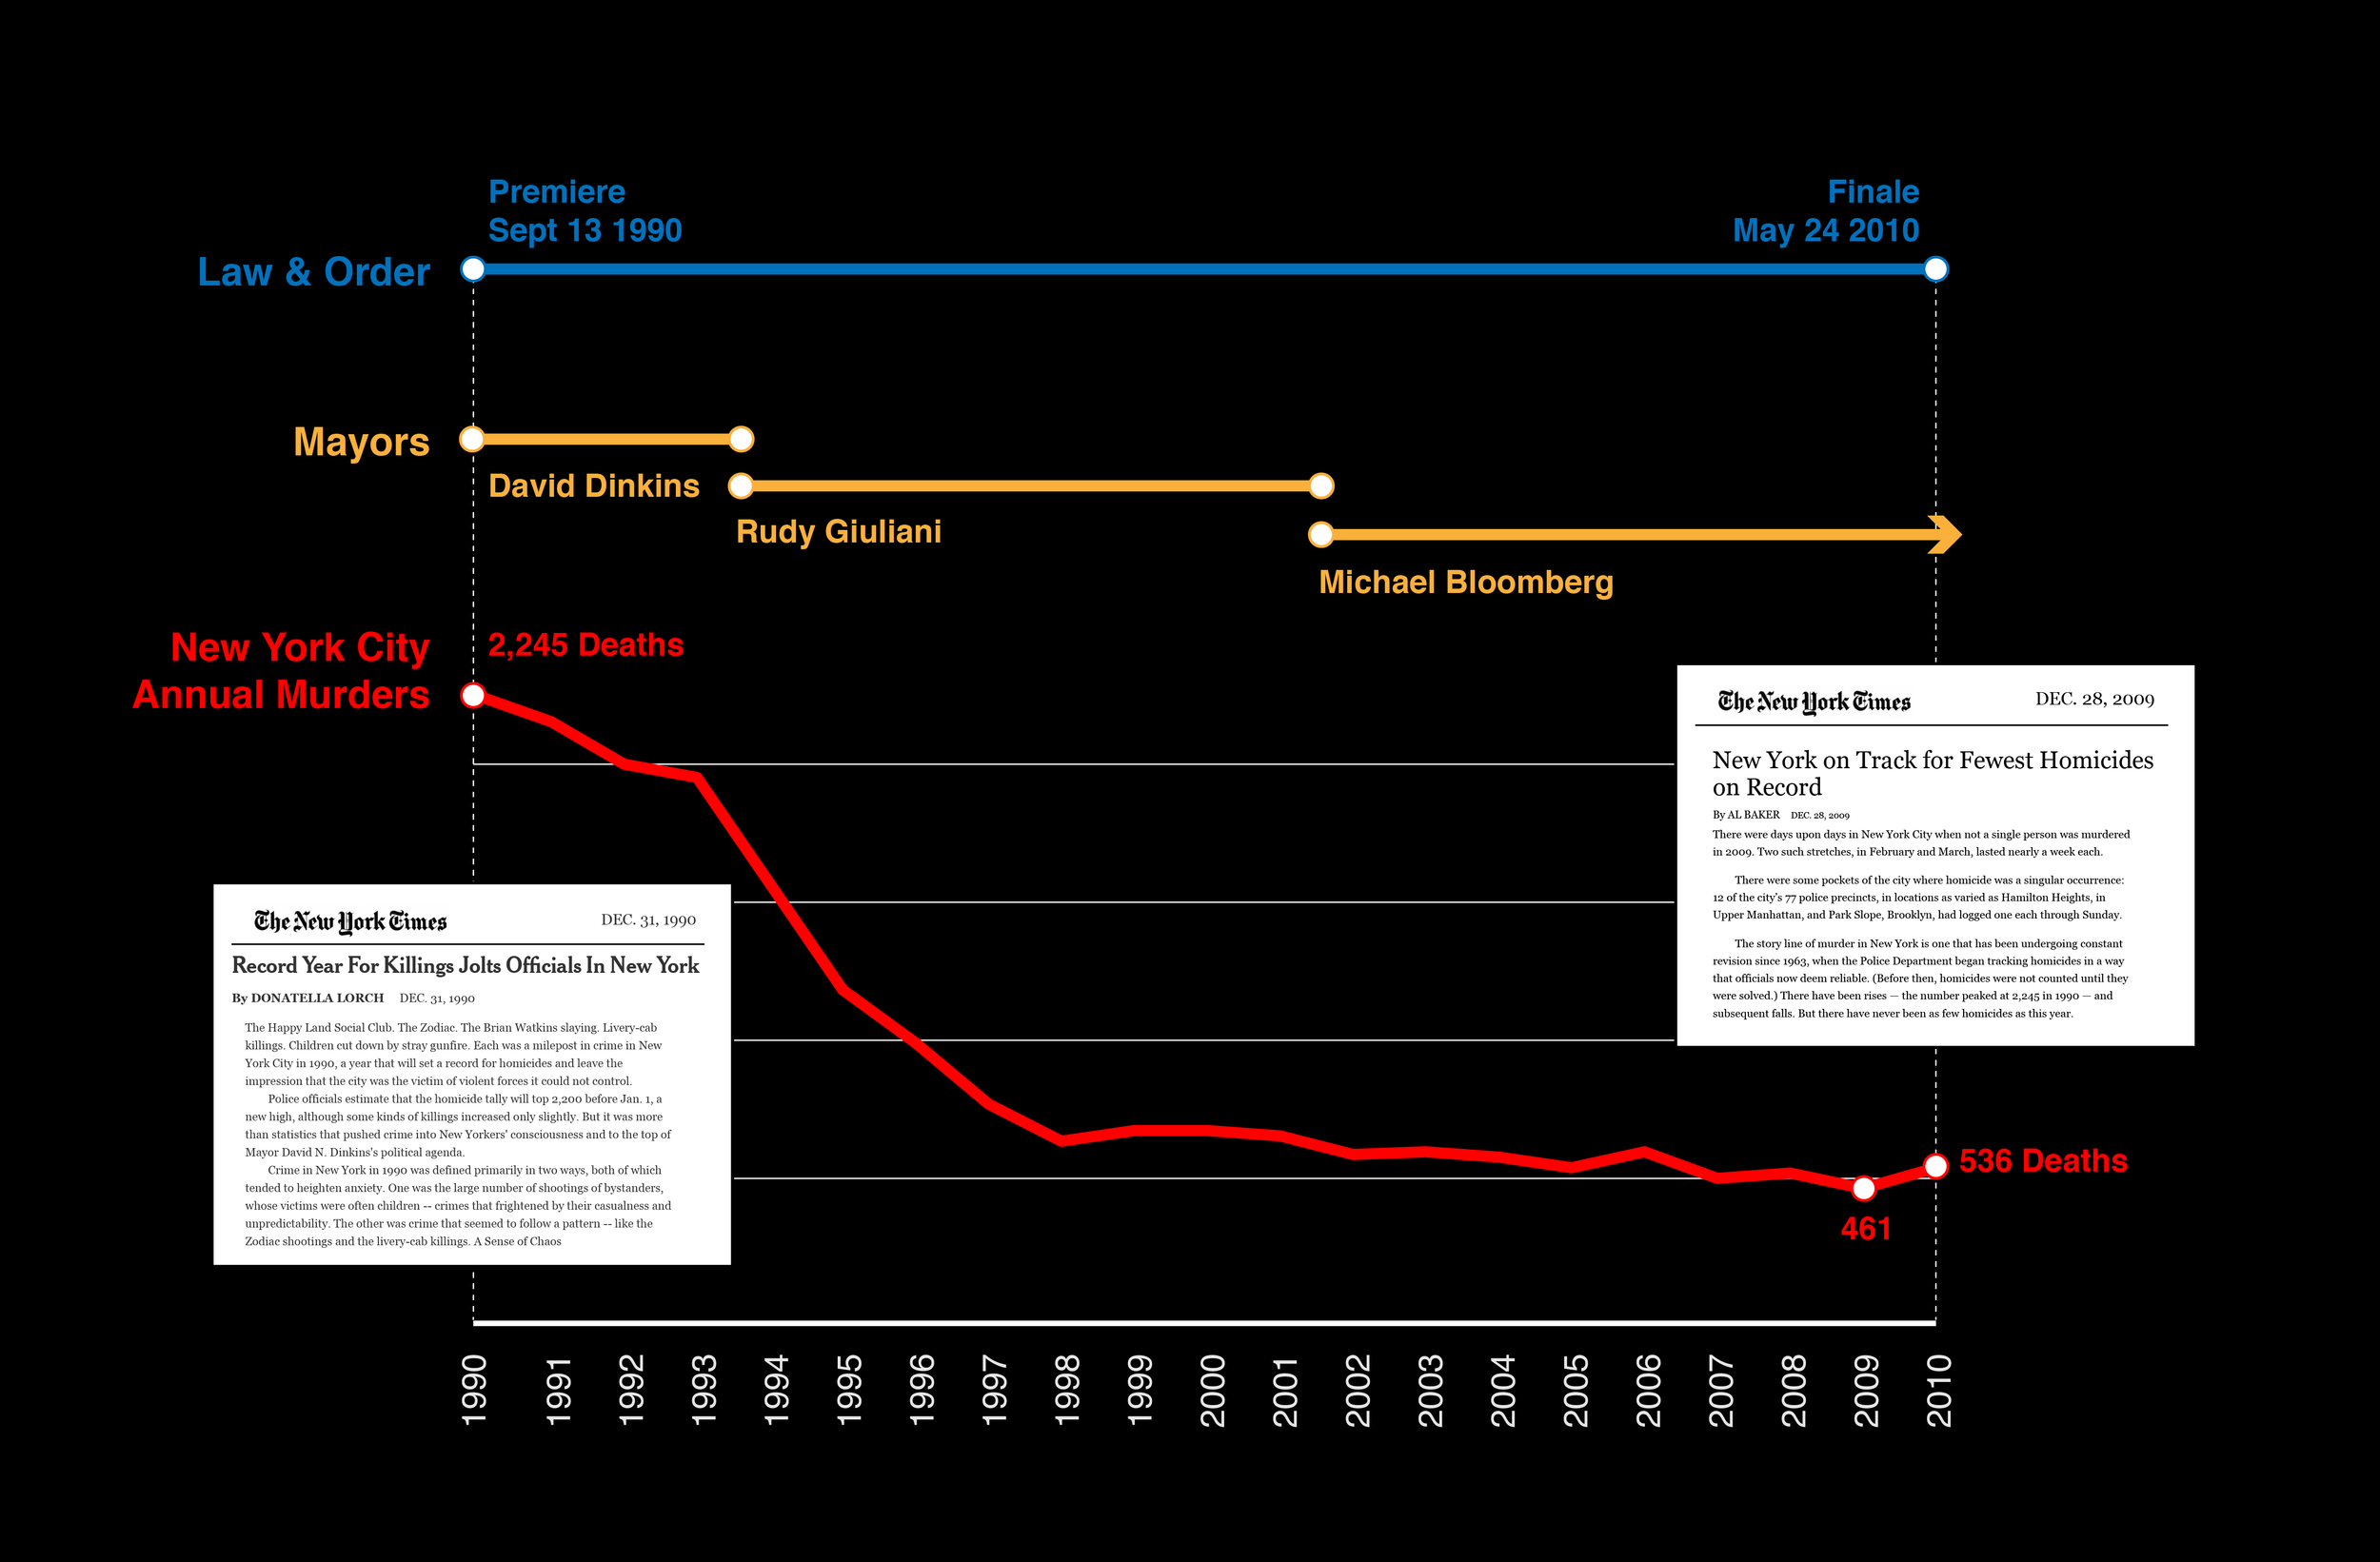 Timeline of Law & Order, NYC Crime Rates Over 20 Years